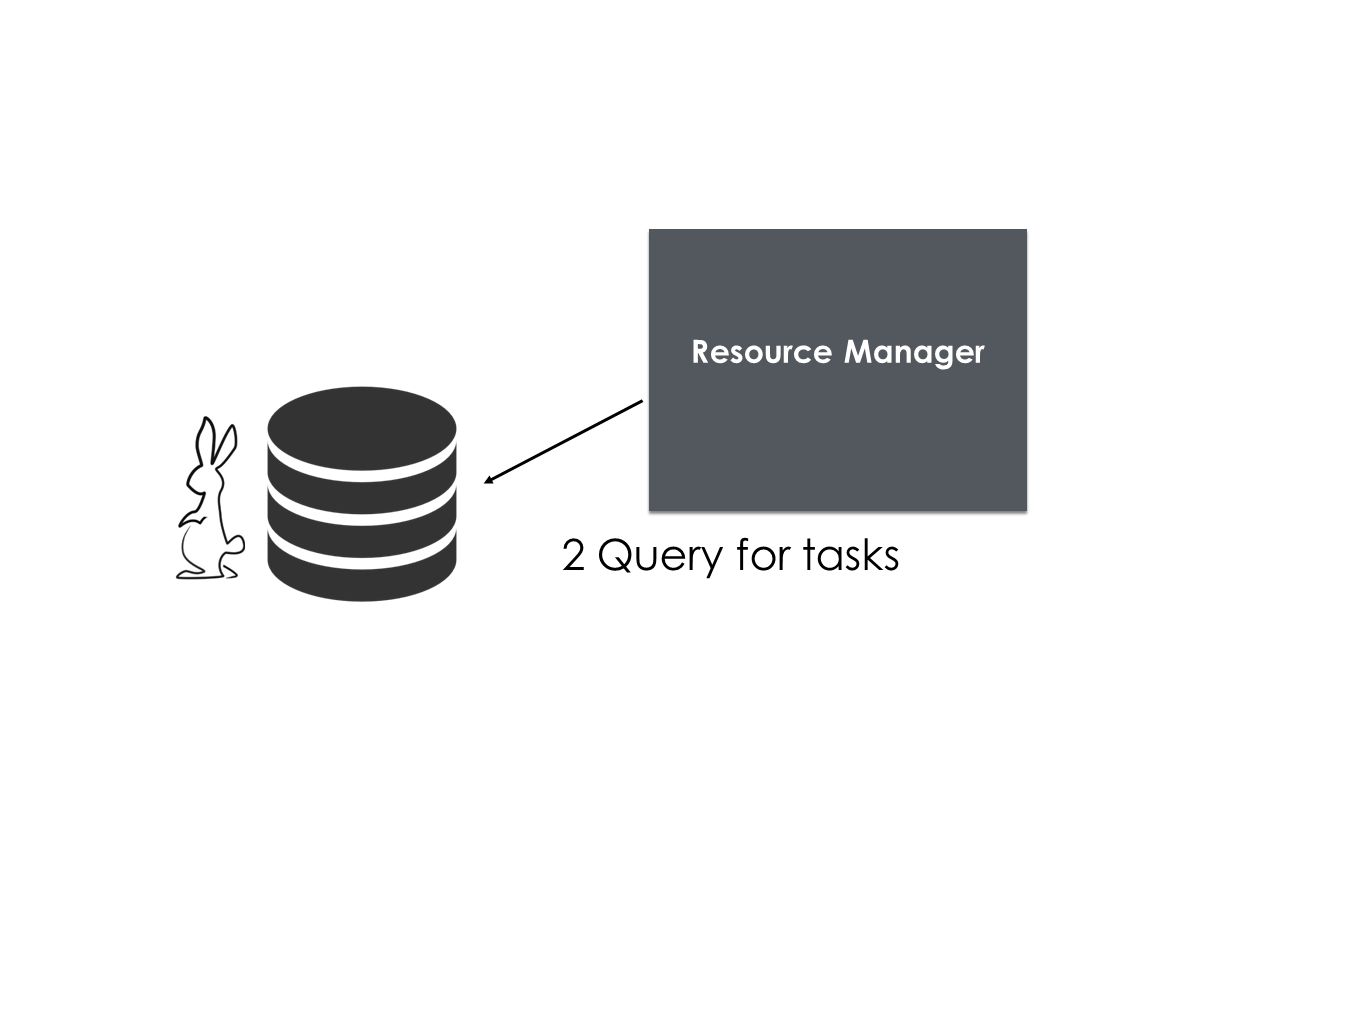 Resource Manager 2 Query for tasks